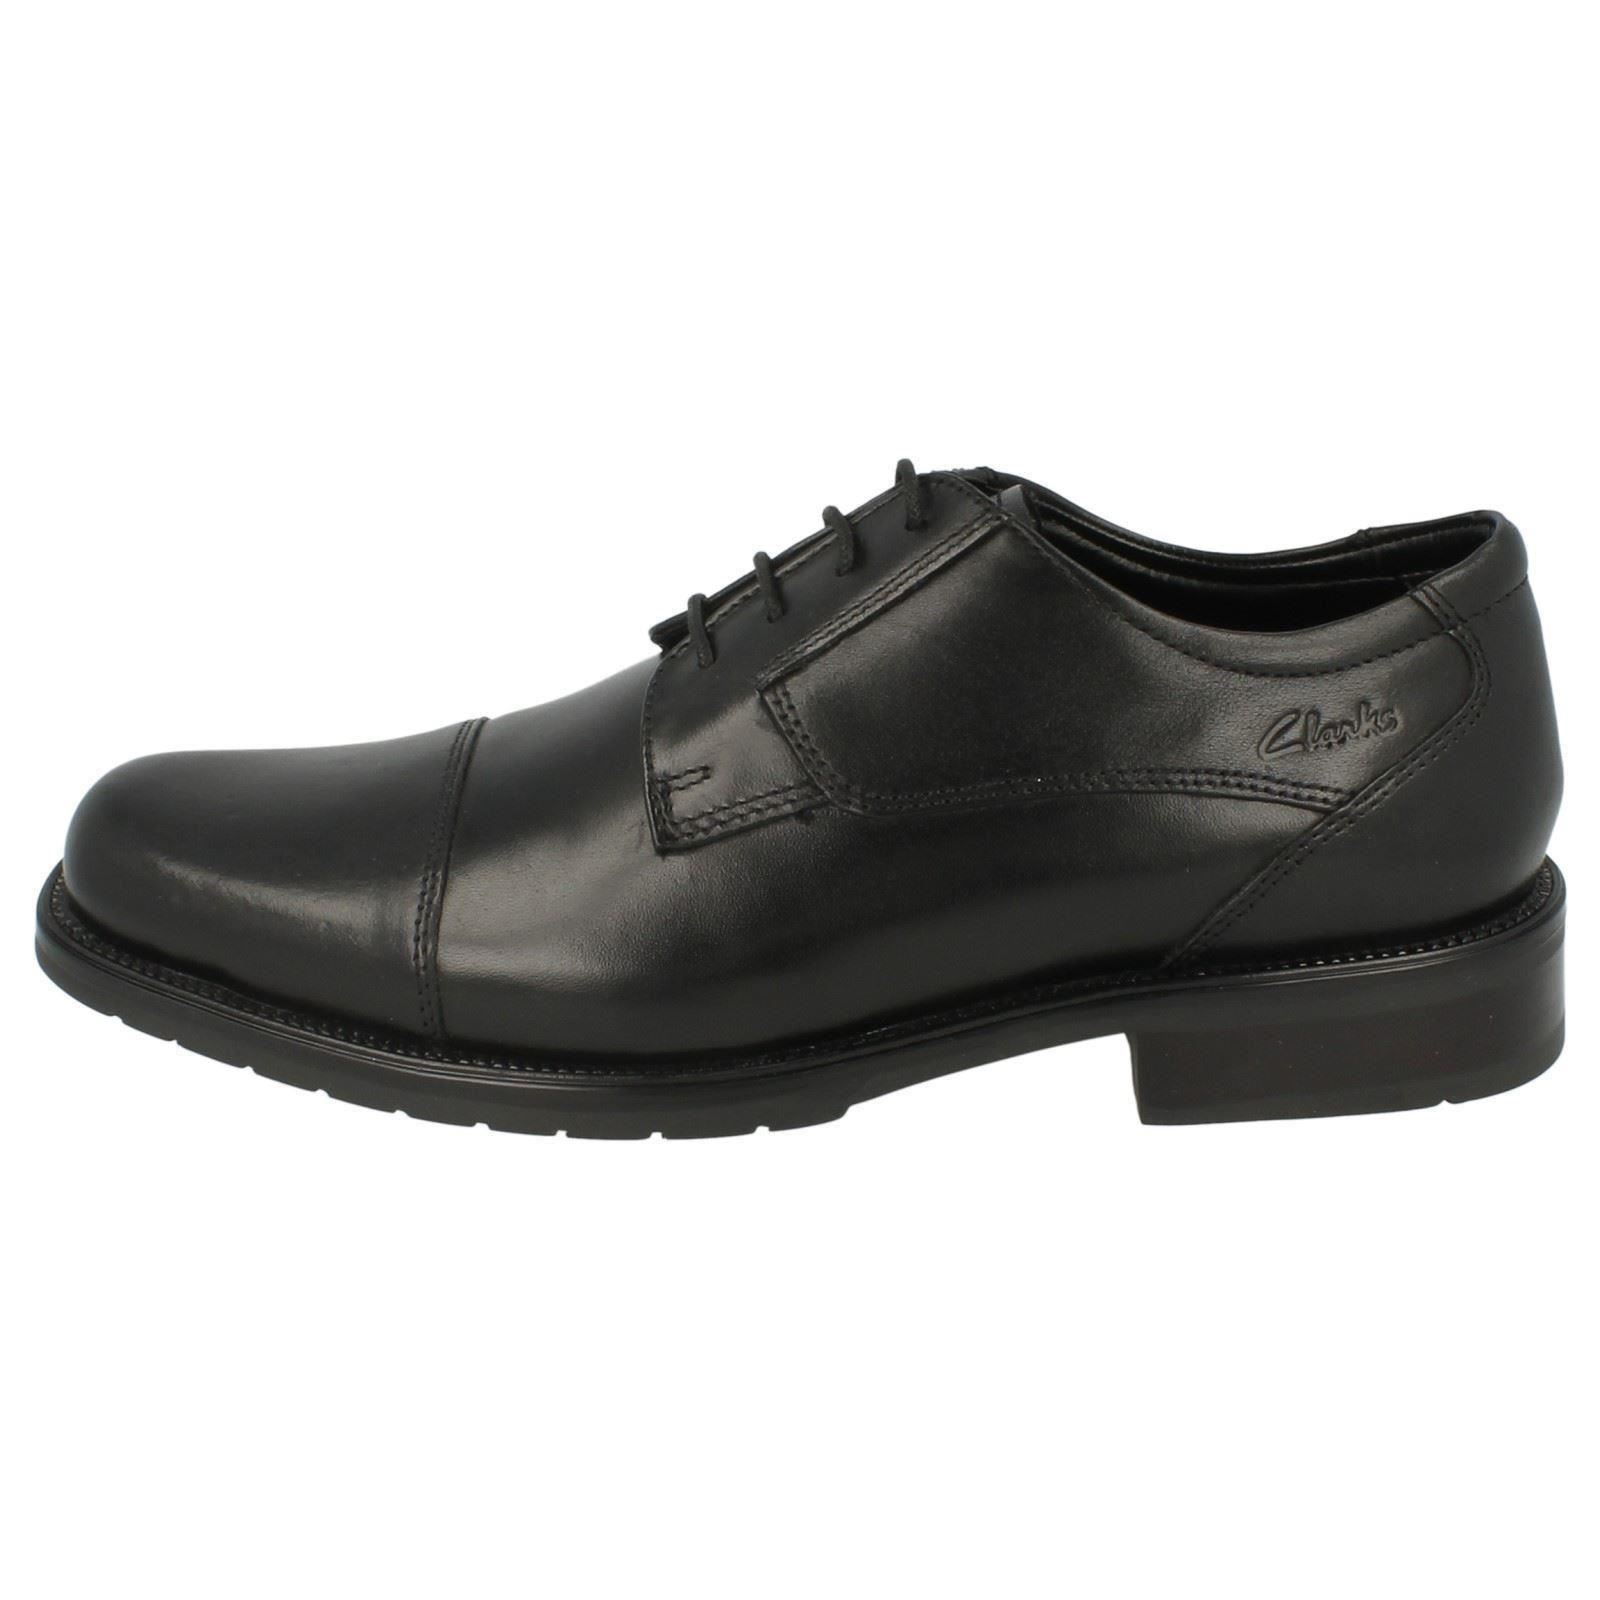 Uomo Clarks Act Breech Act Clarks Formal Schuhes 250f6c